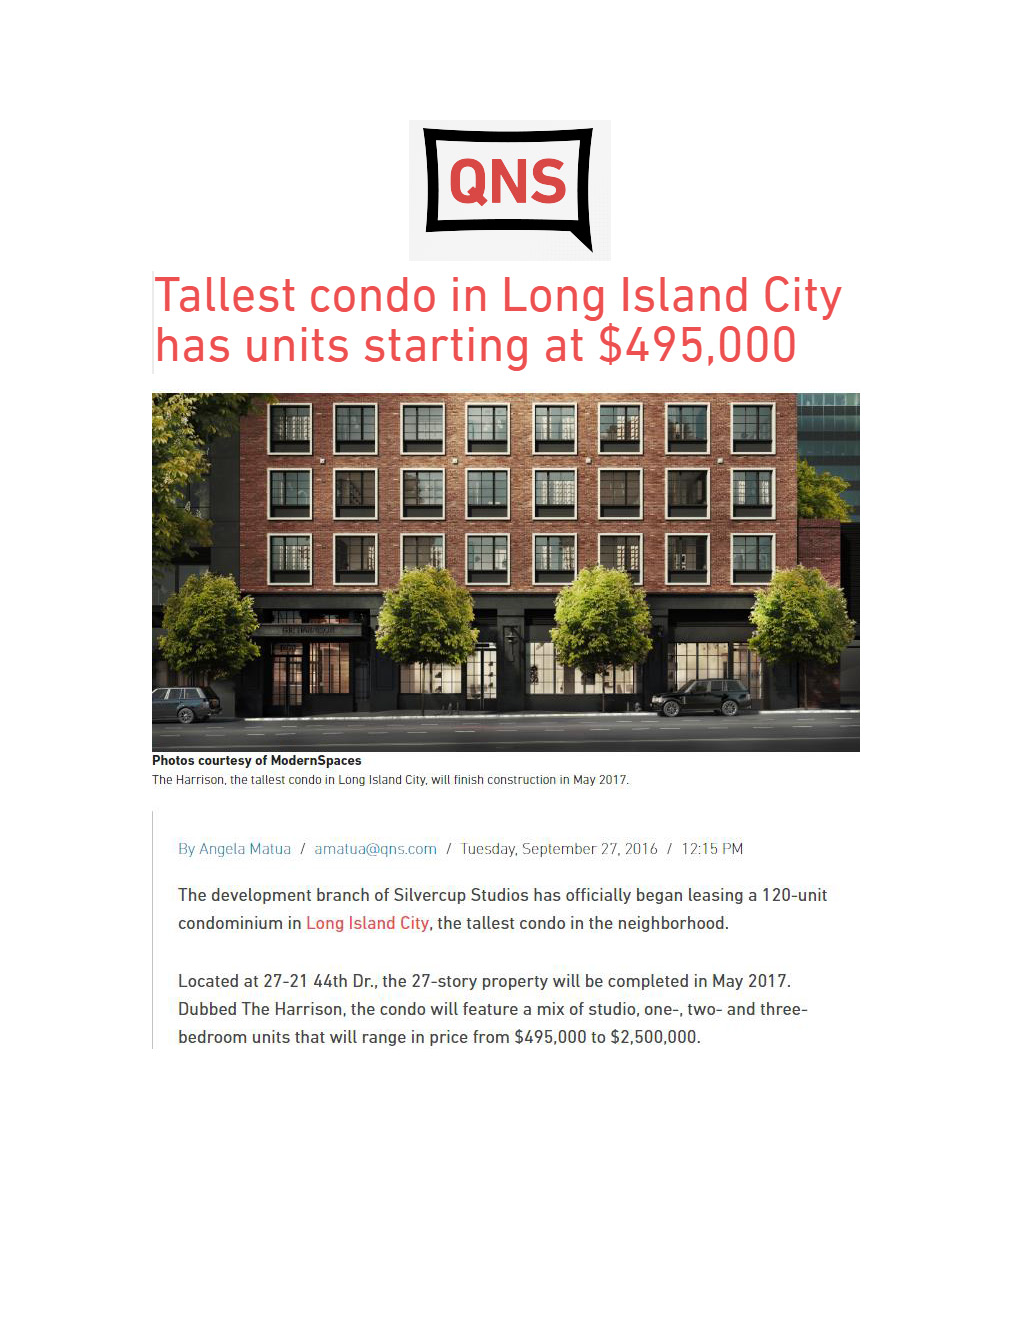 qns-tallest-condo-in-lic-has-units-starting-at-495000-9-27-16-1_page_1